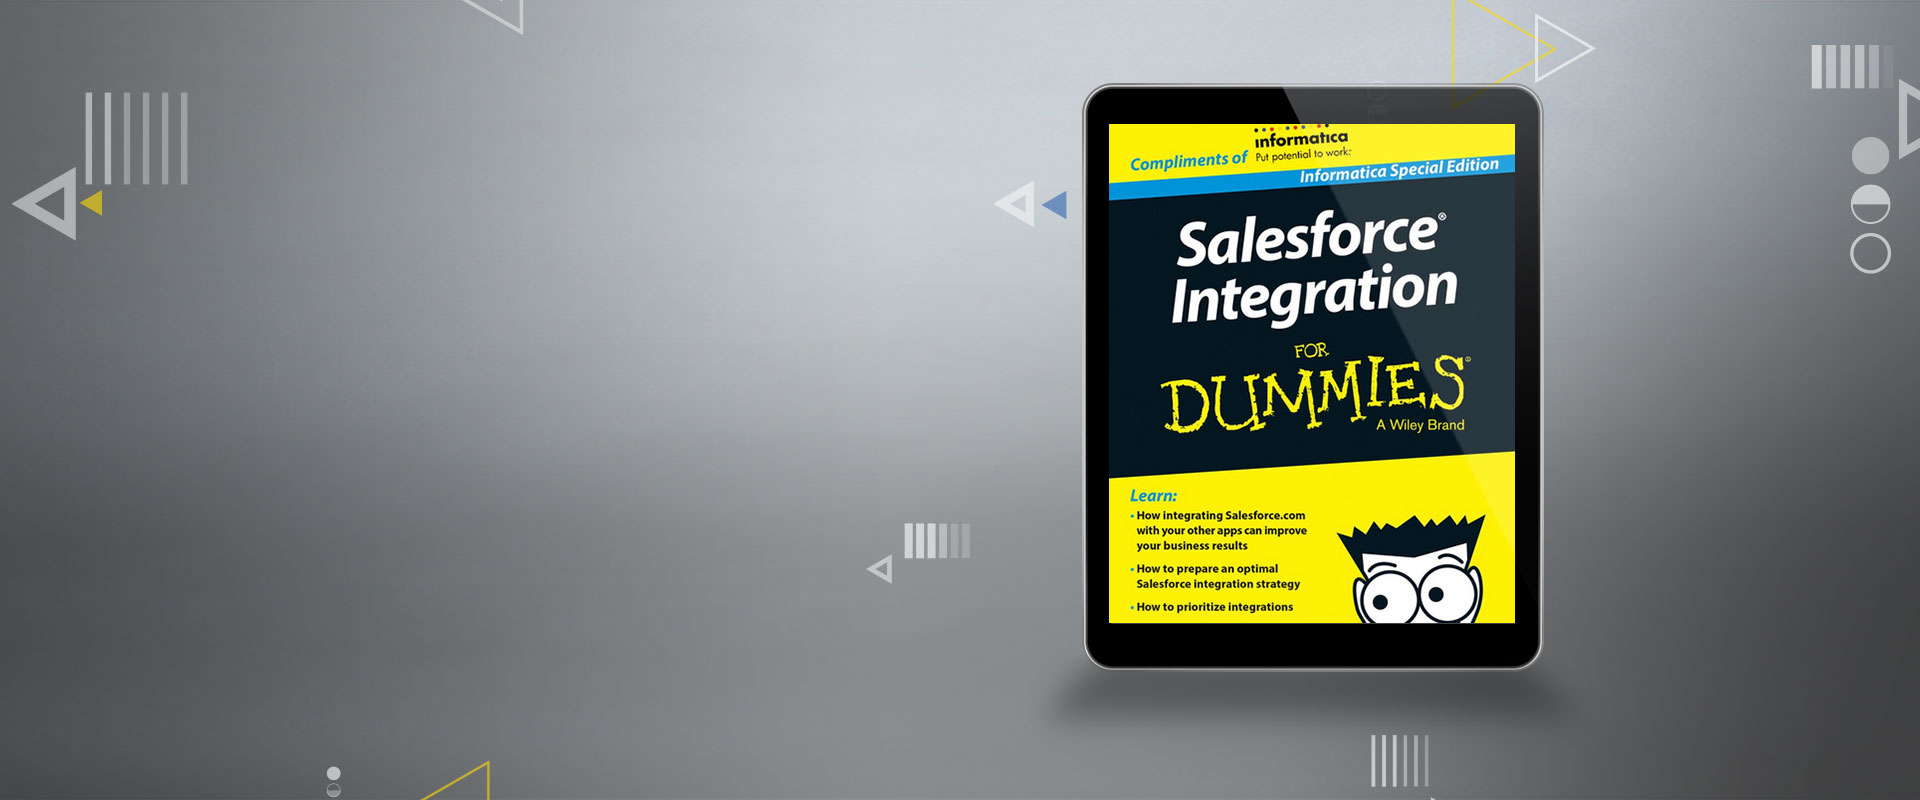 h01-salesforce-for-dummies